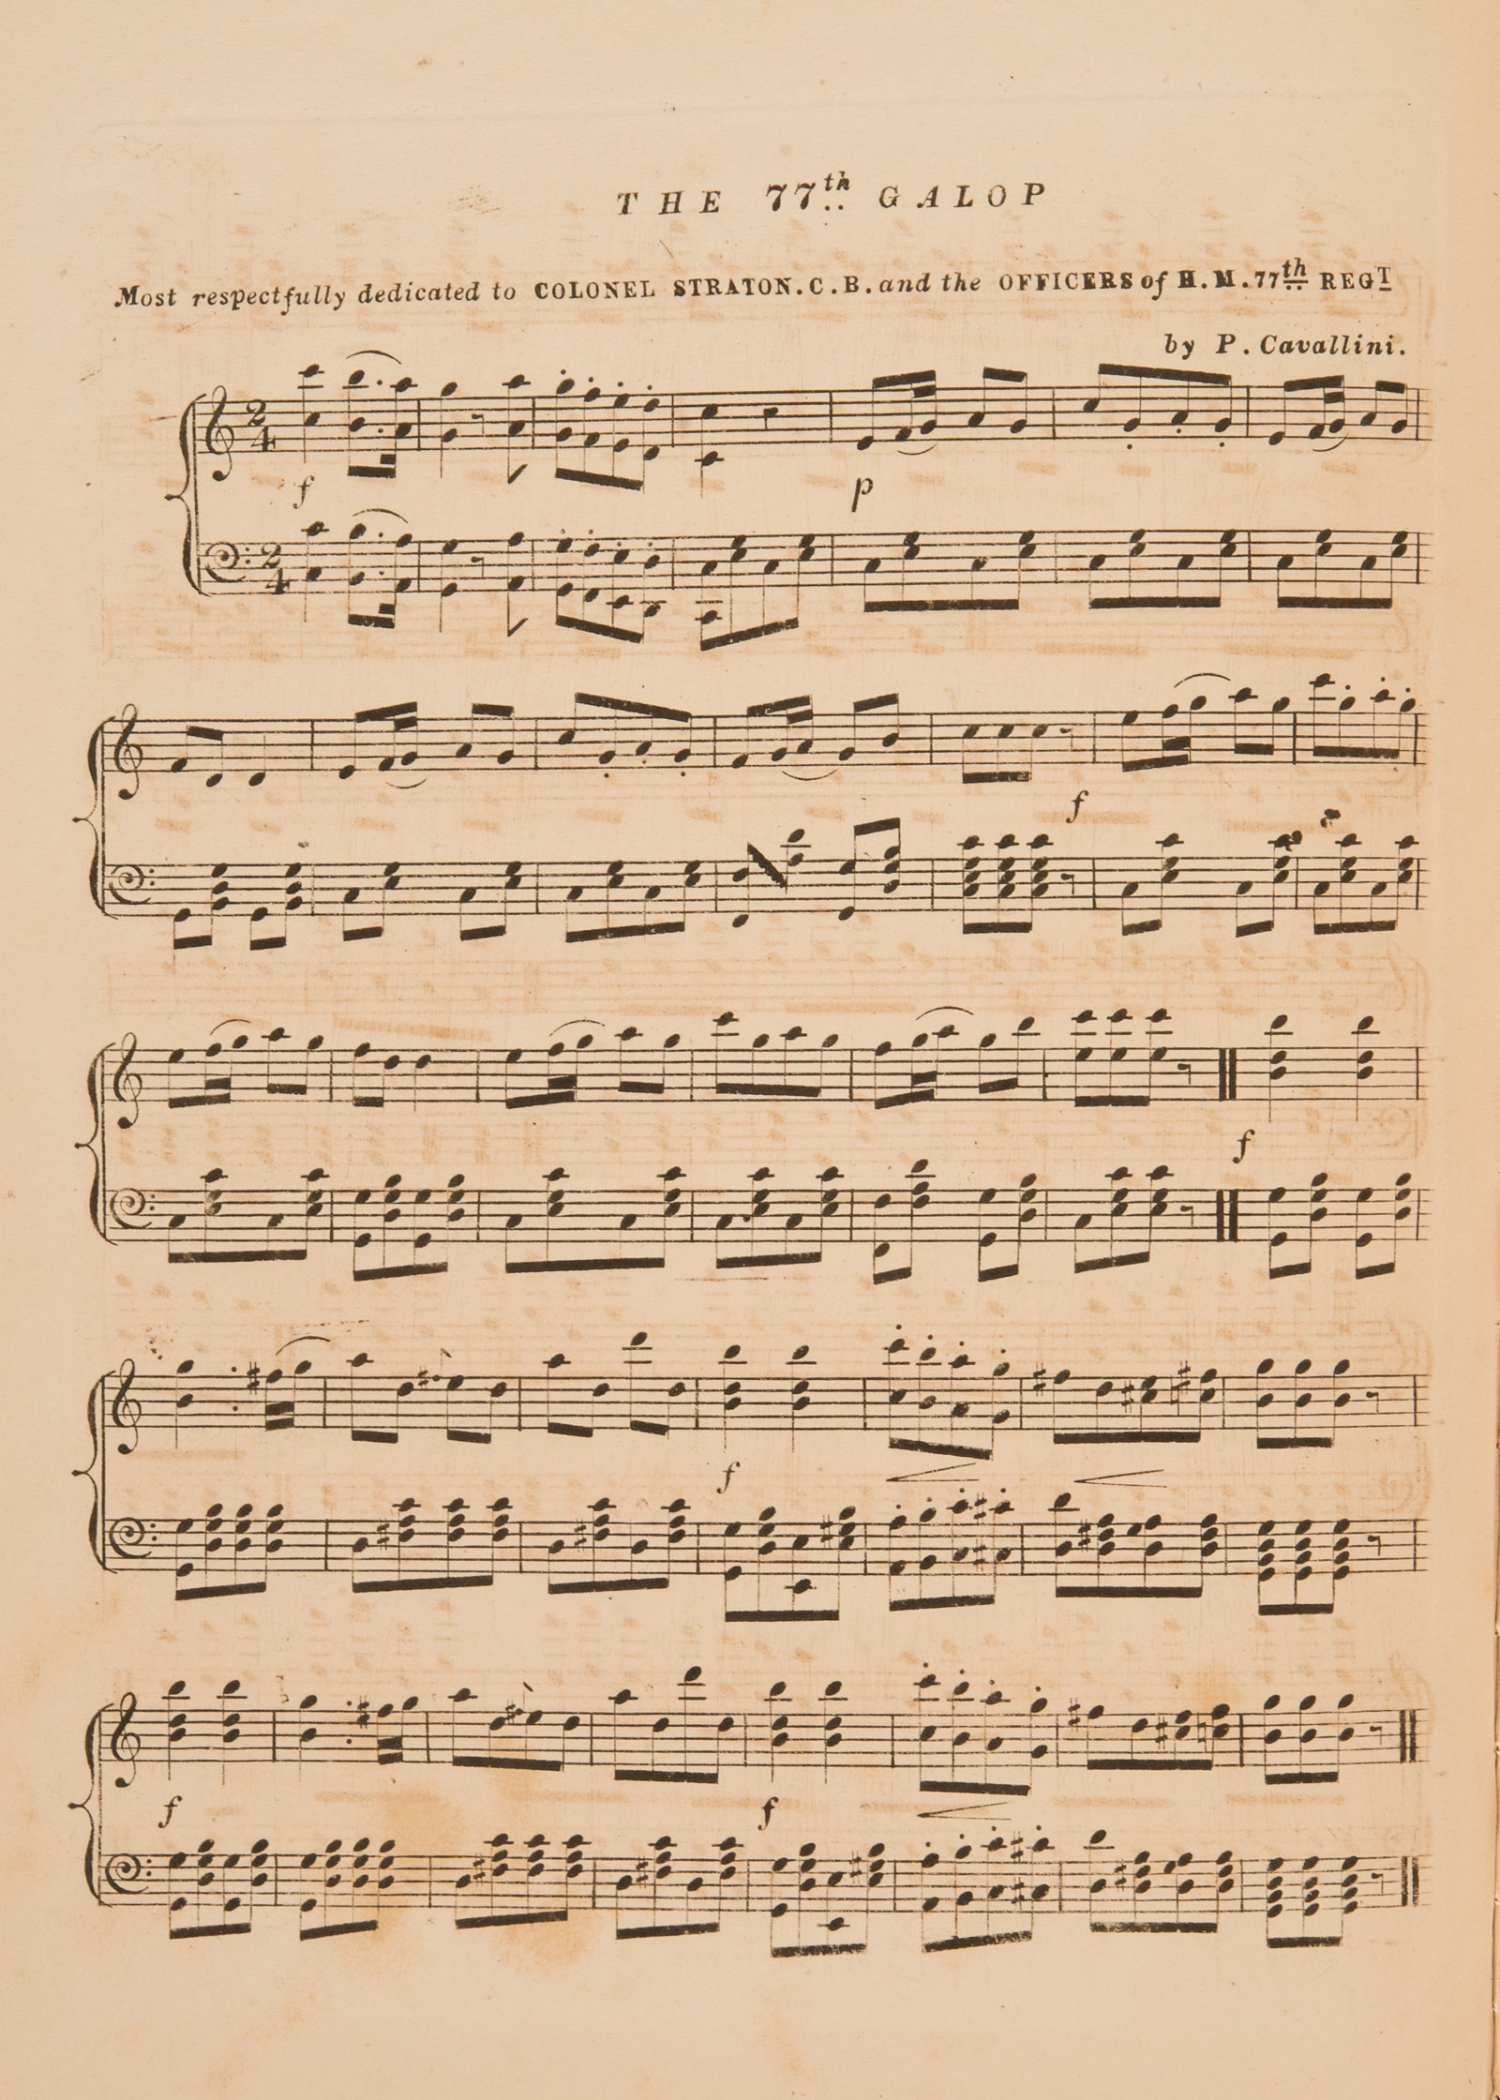 Sheet music, 'The 77th Galop', by P. Cavallini, page 1, published 1858